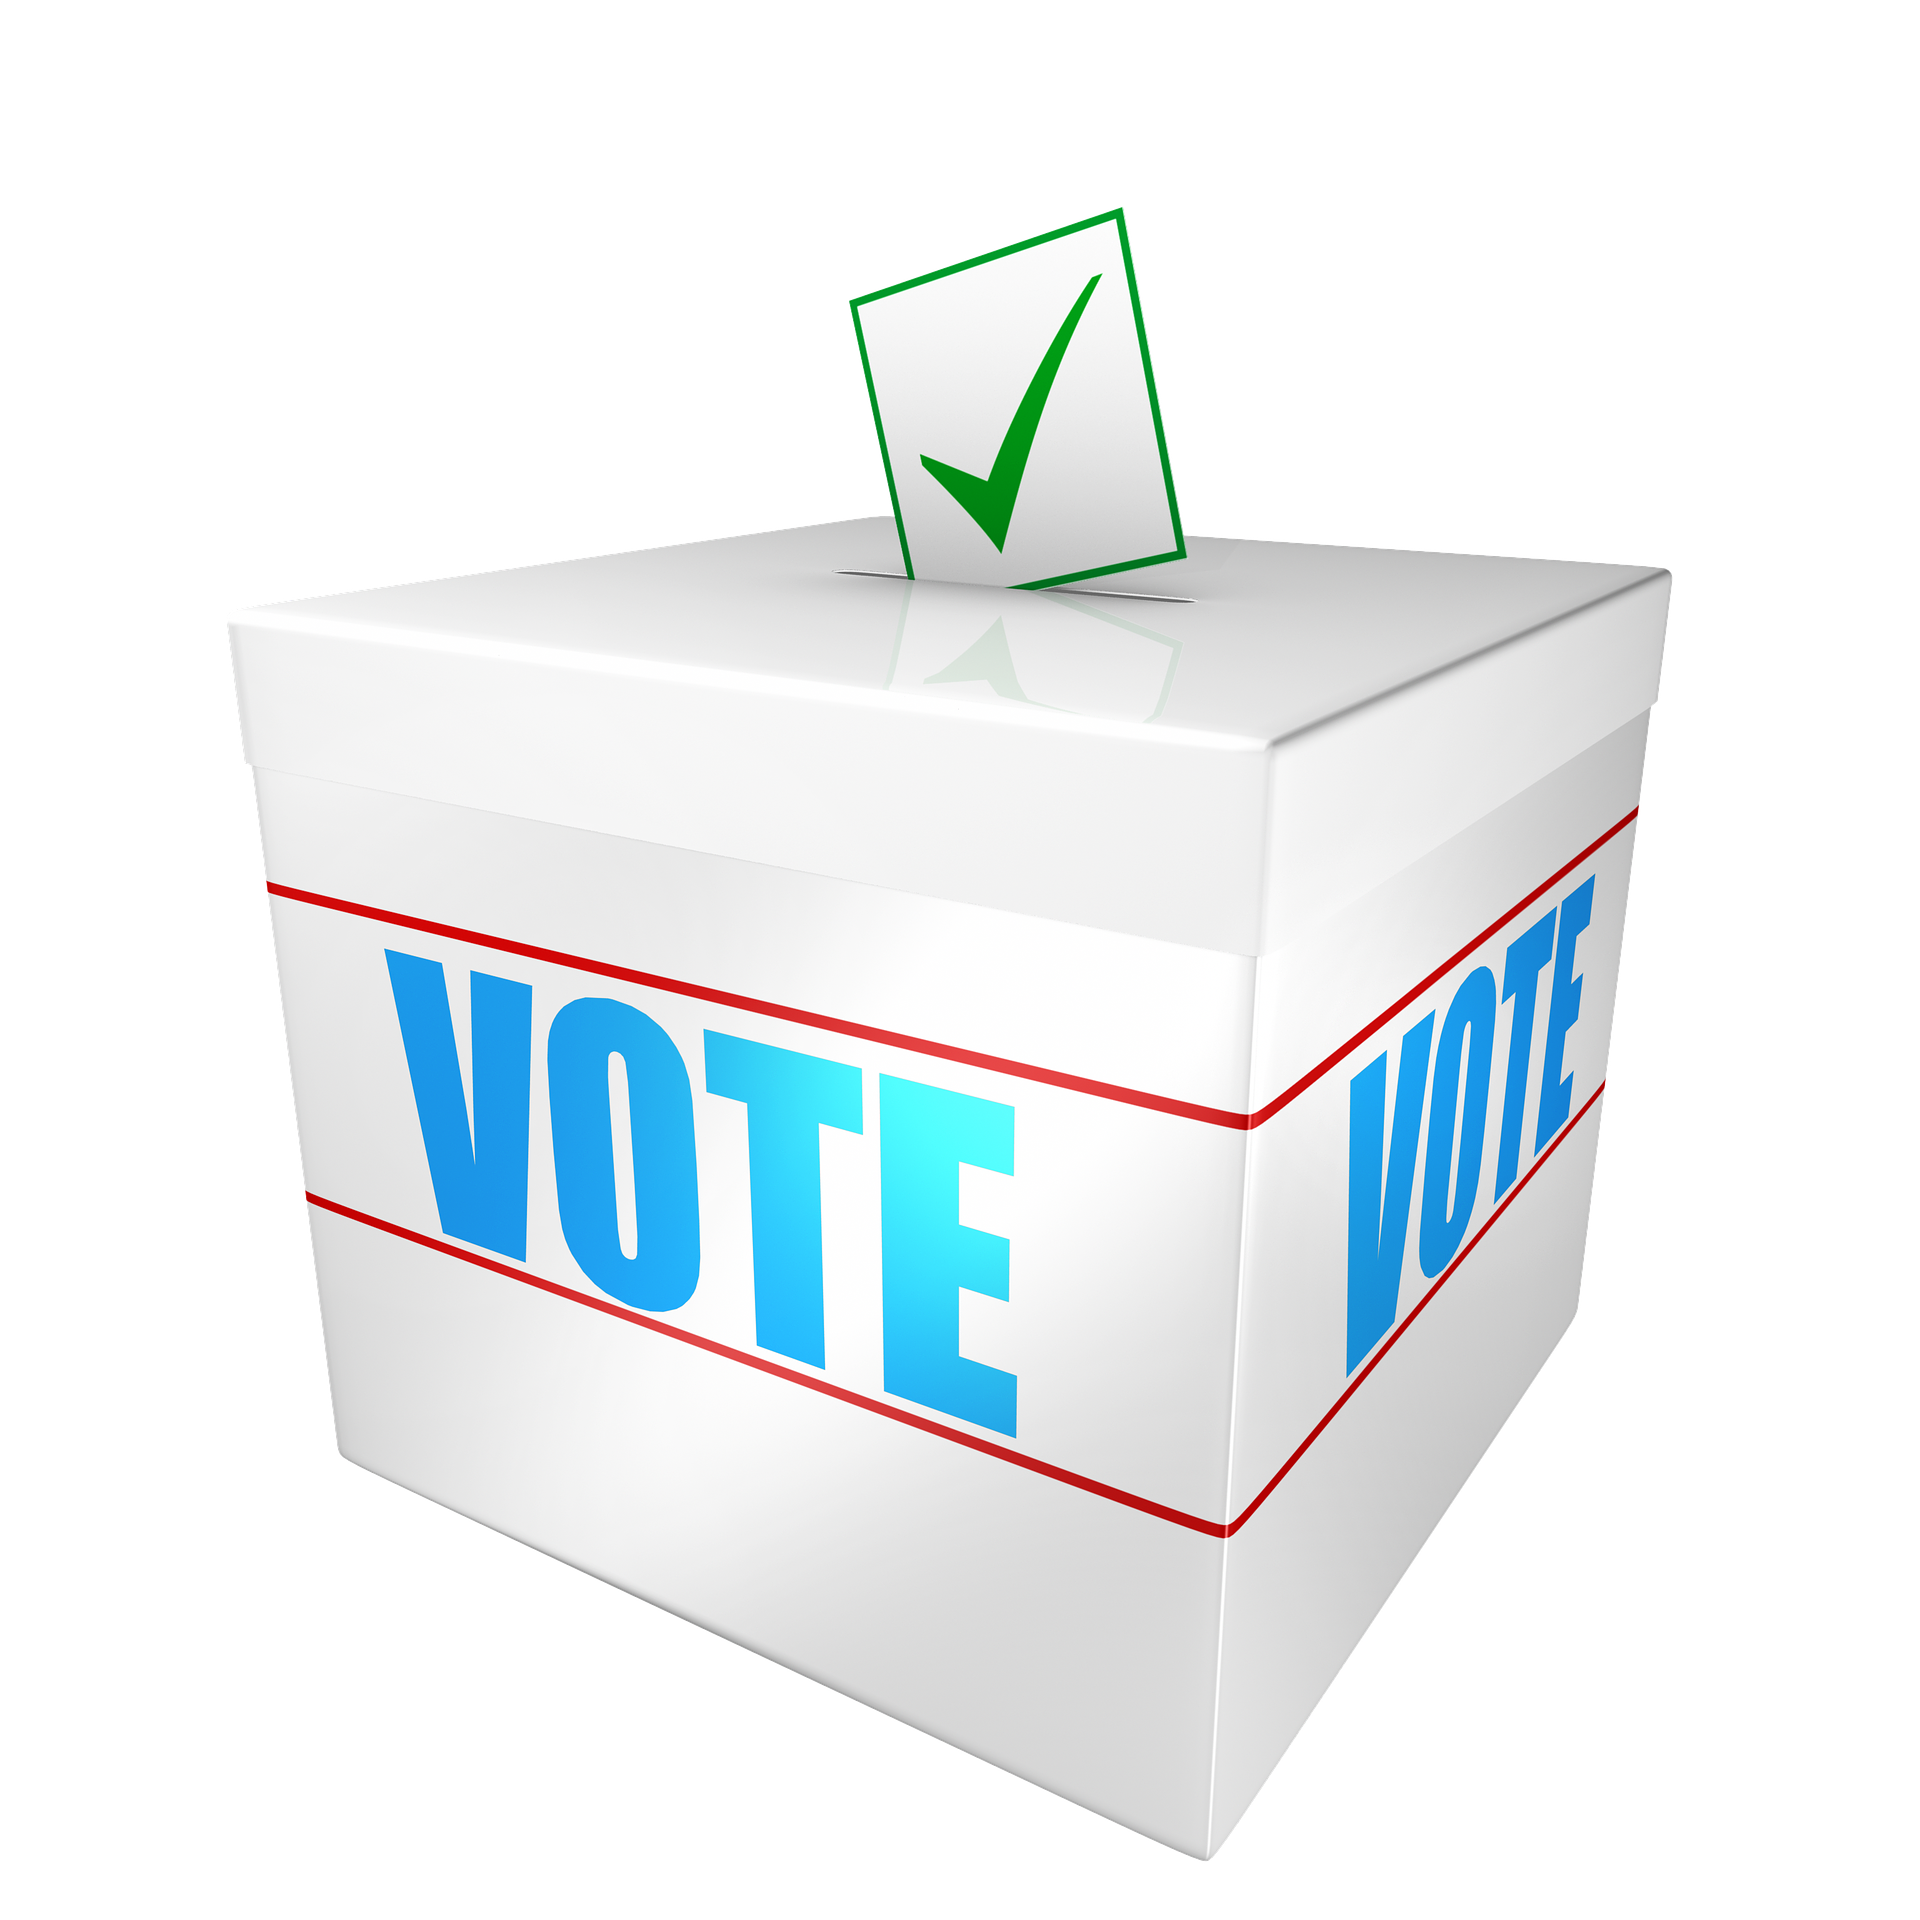 Niagara sees a drop. Voting clipart election day